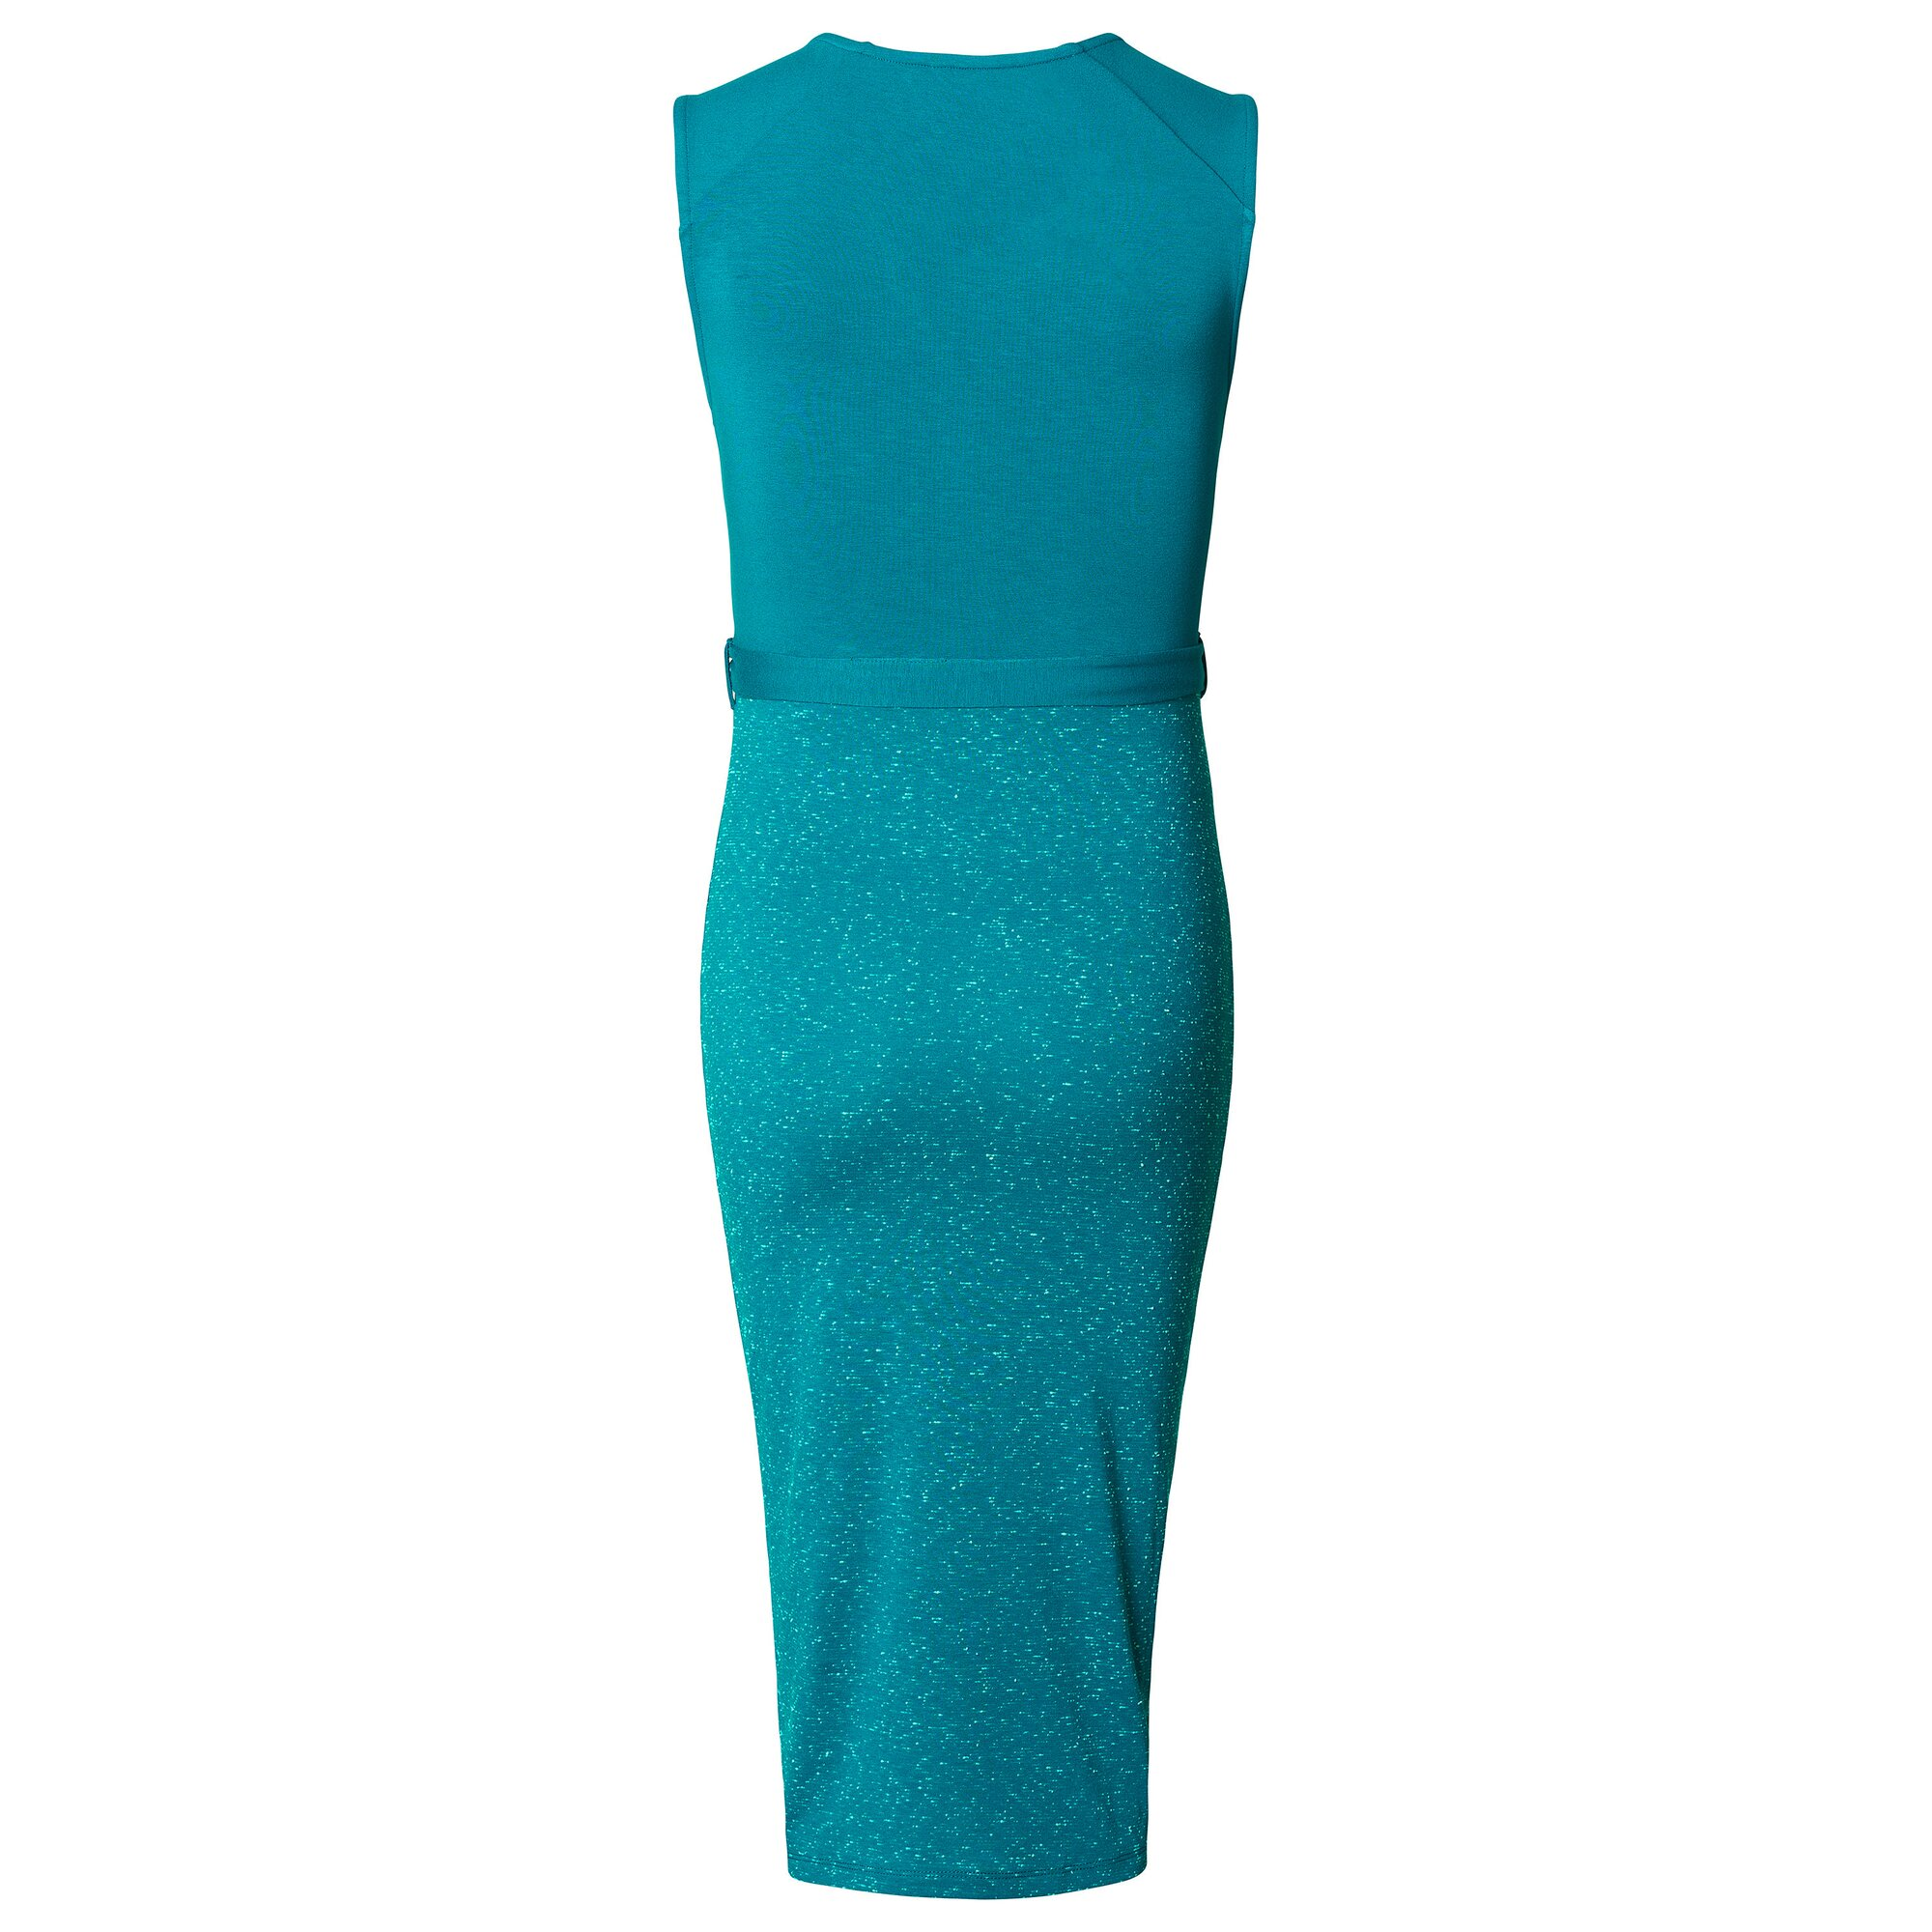 noppies-still-kleid-selena, 74.99 EUR @ babywalz-de